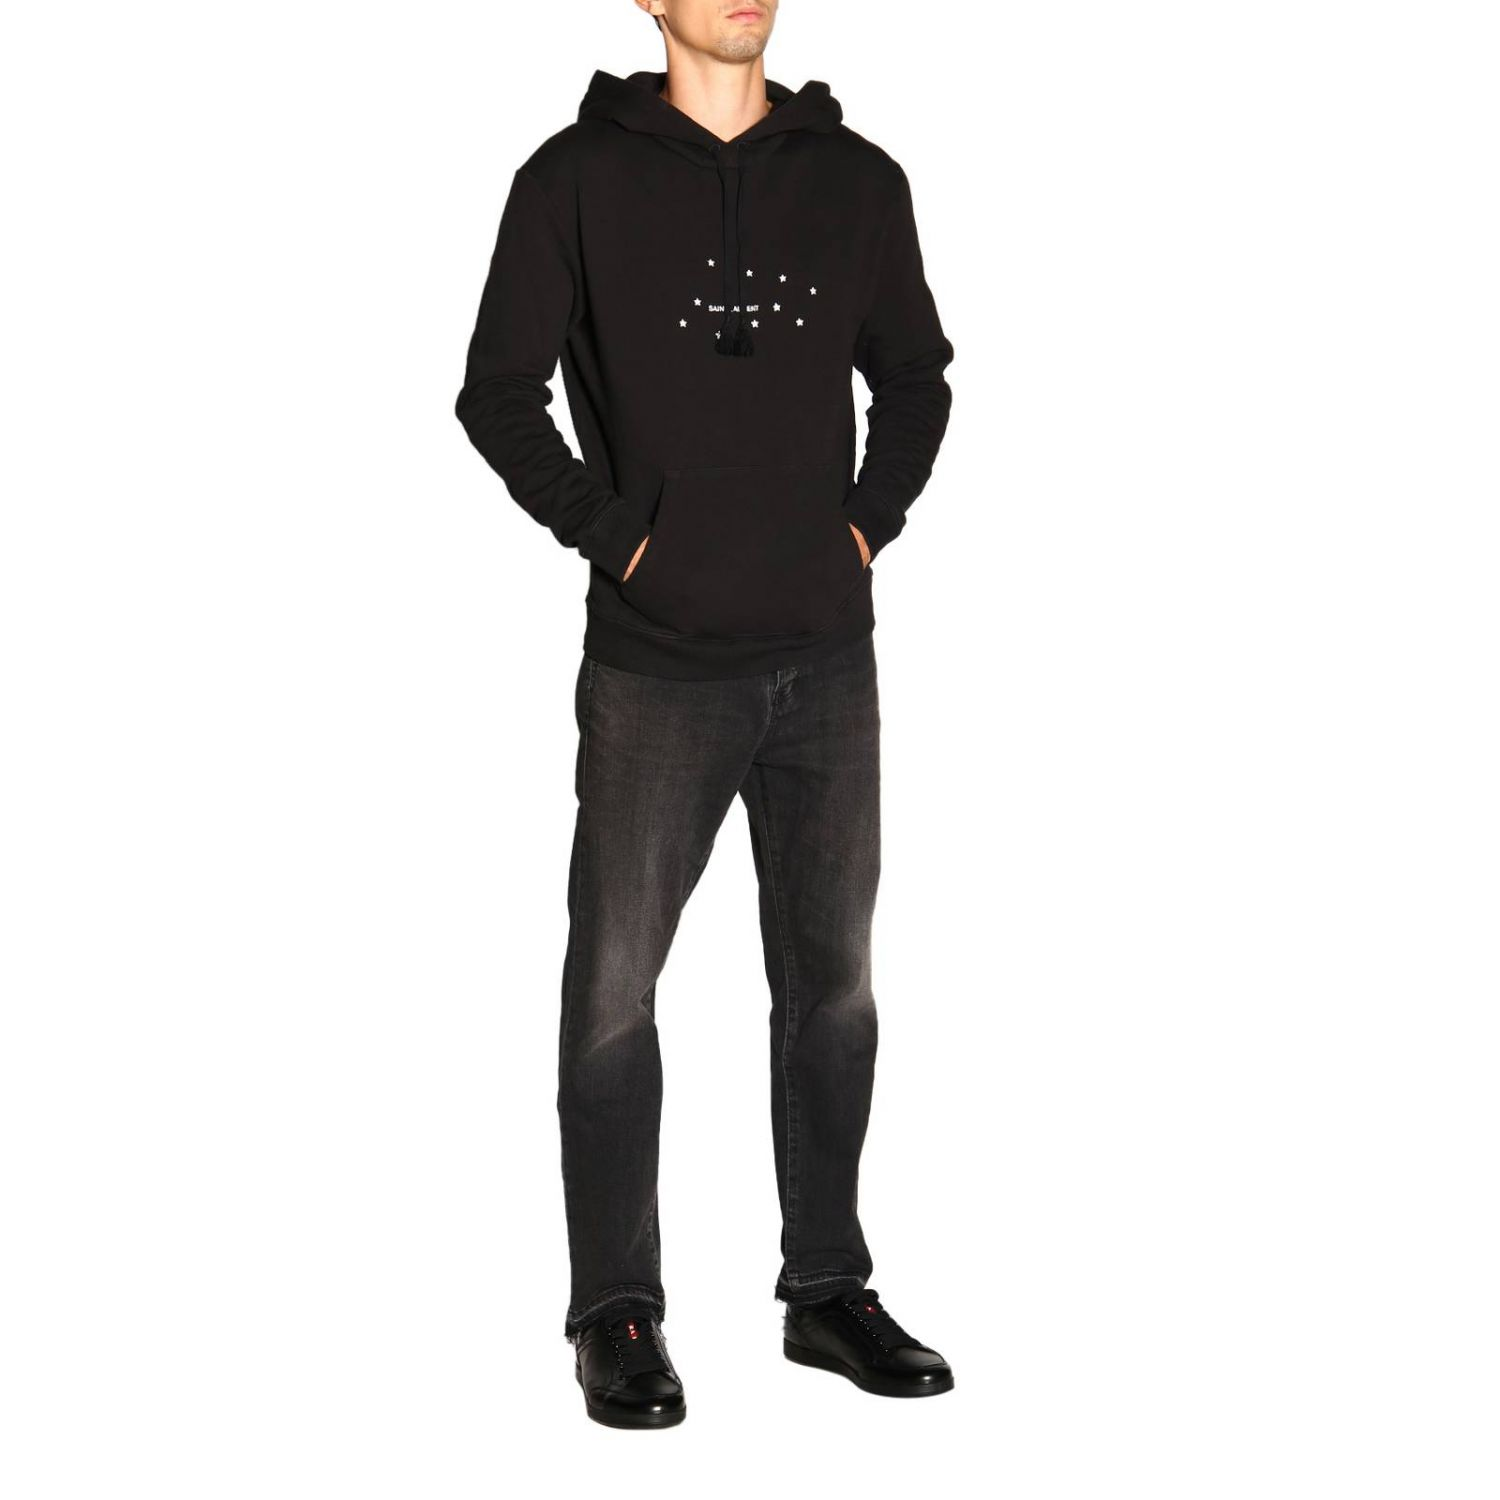 Sweater men Saint Laurent black 2